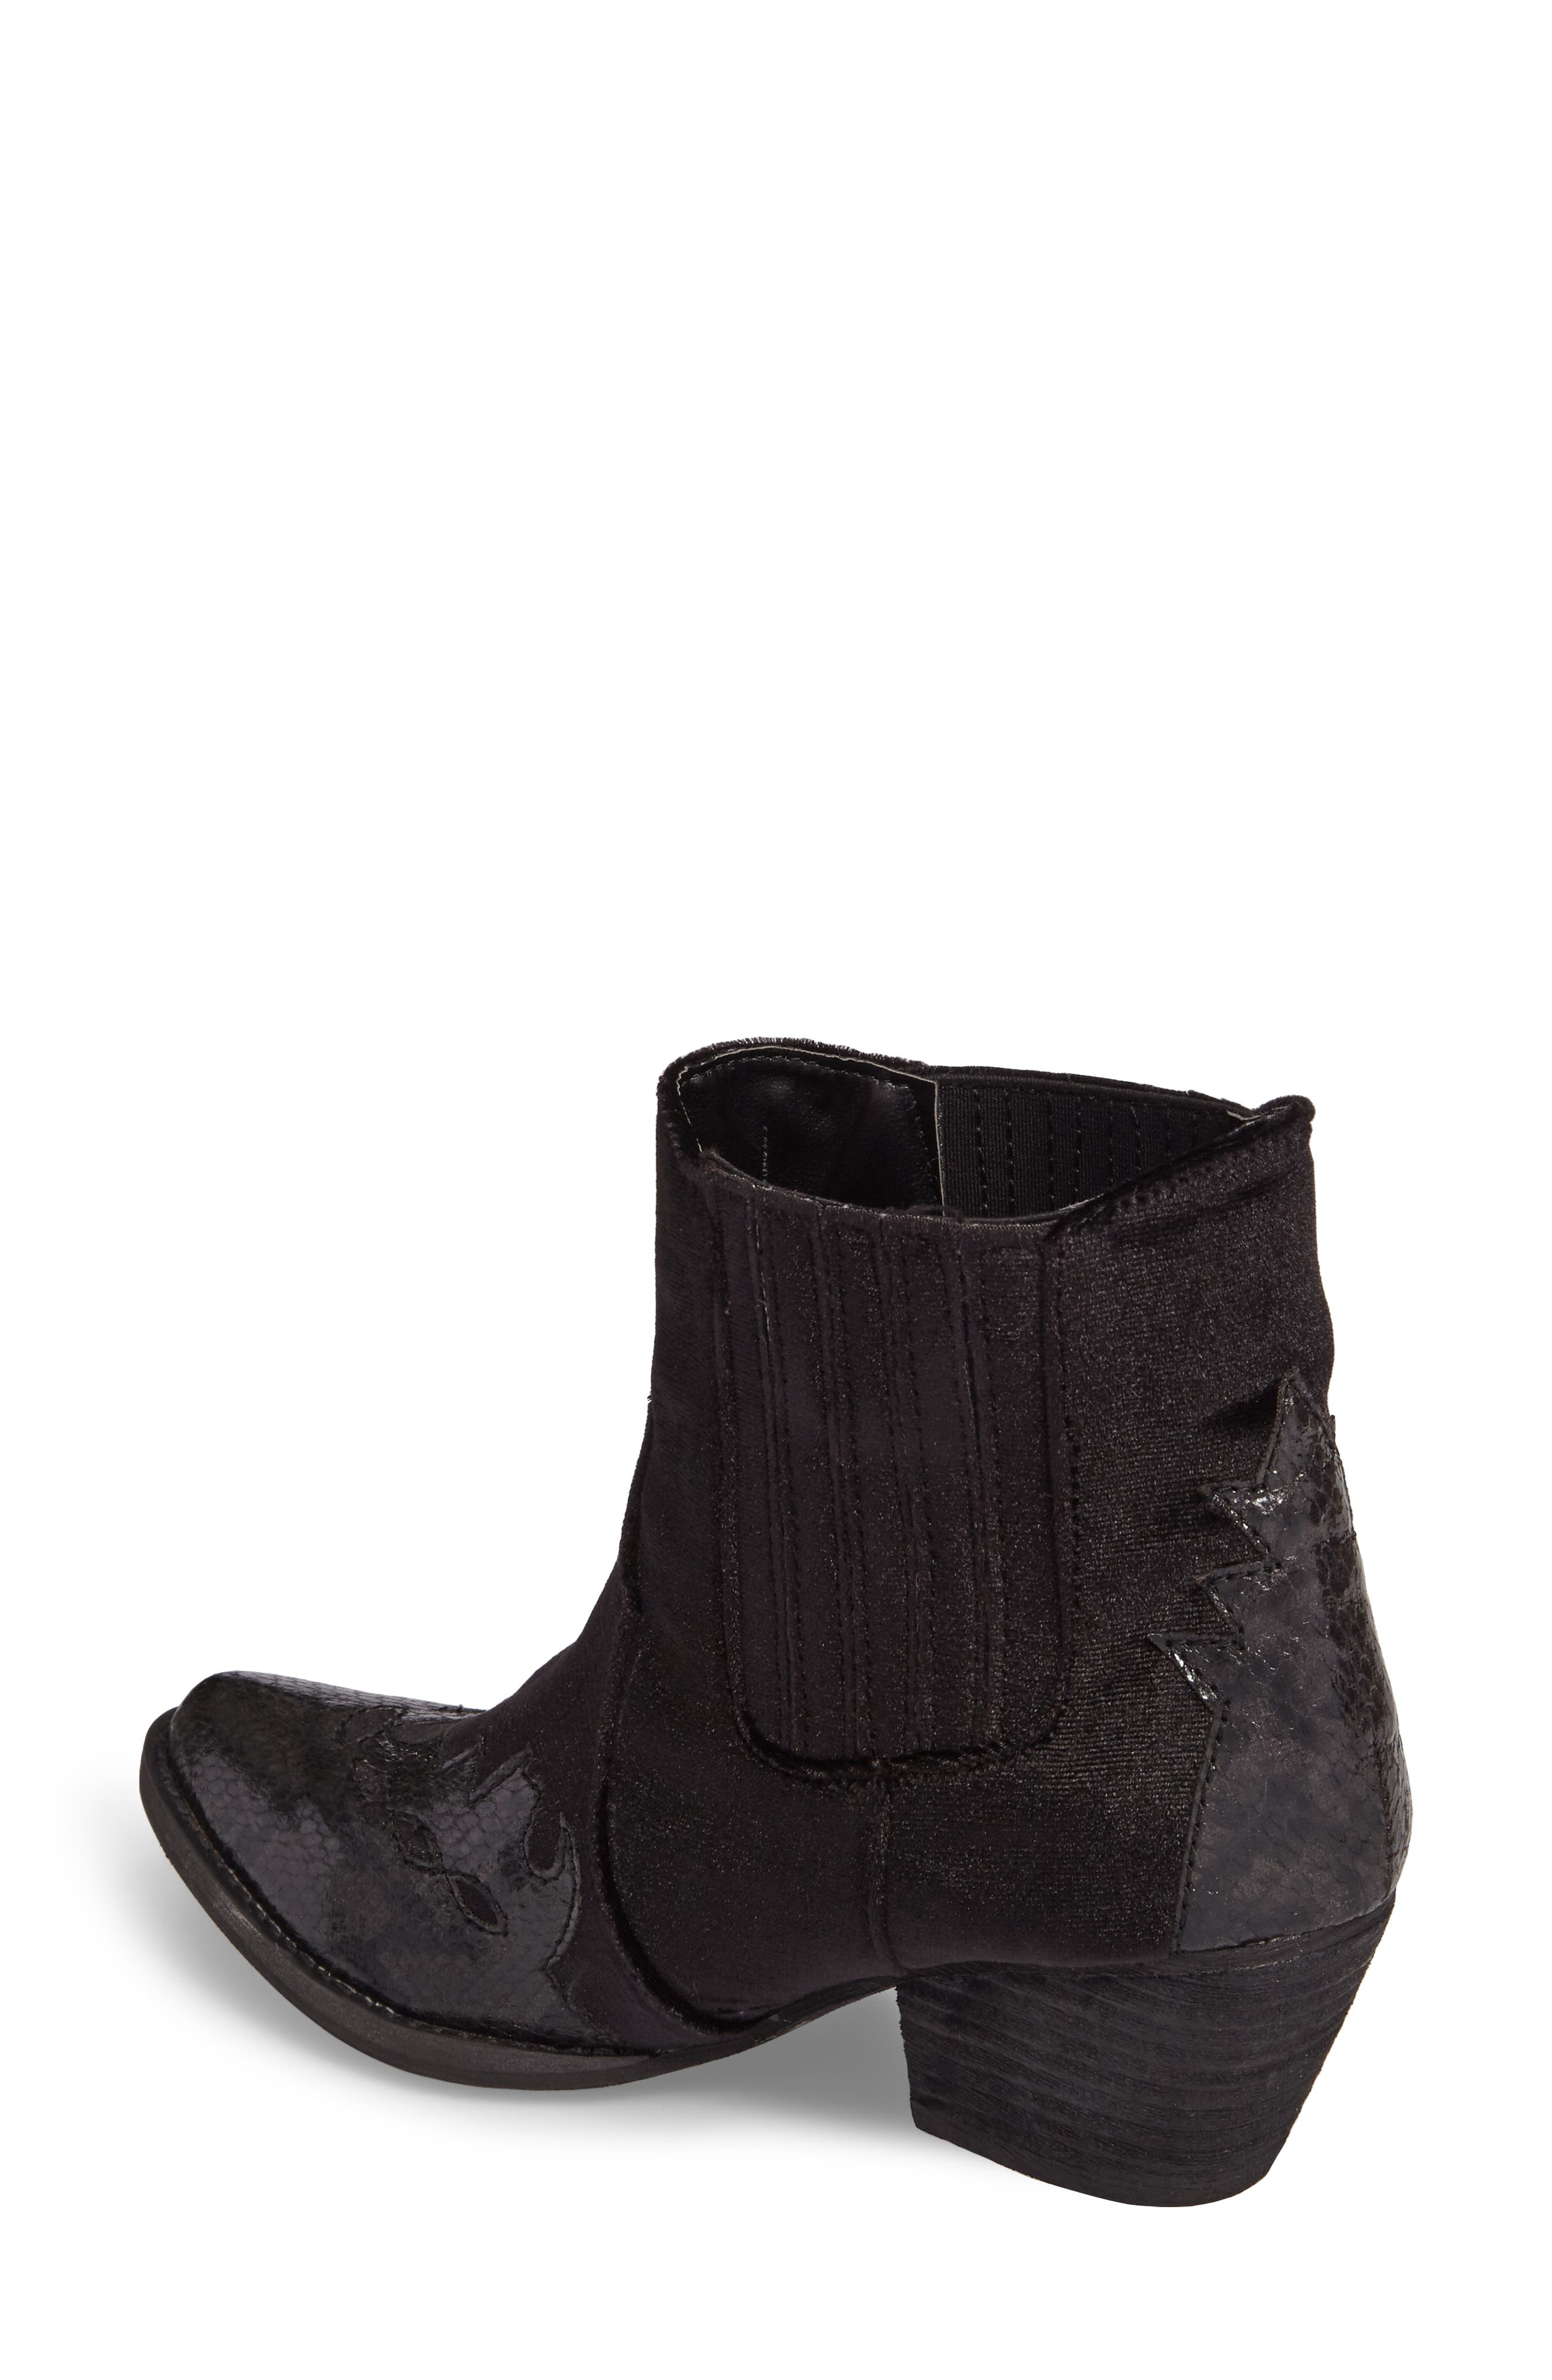 Sava Western Chelsea Bootie,                             Alternate thumbnail 2, color,                             001